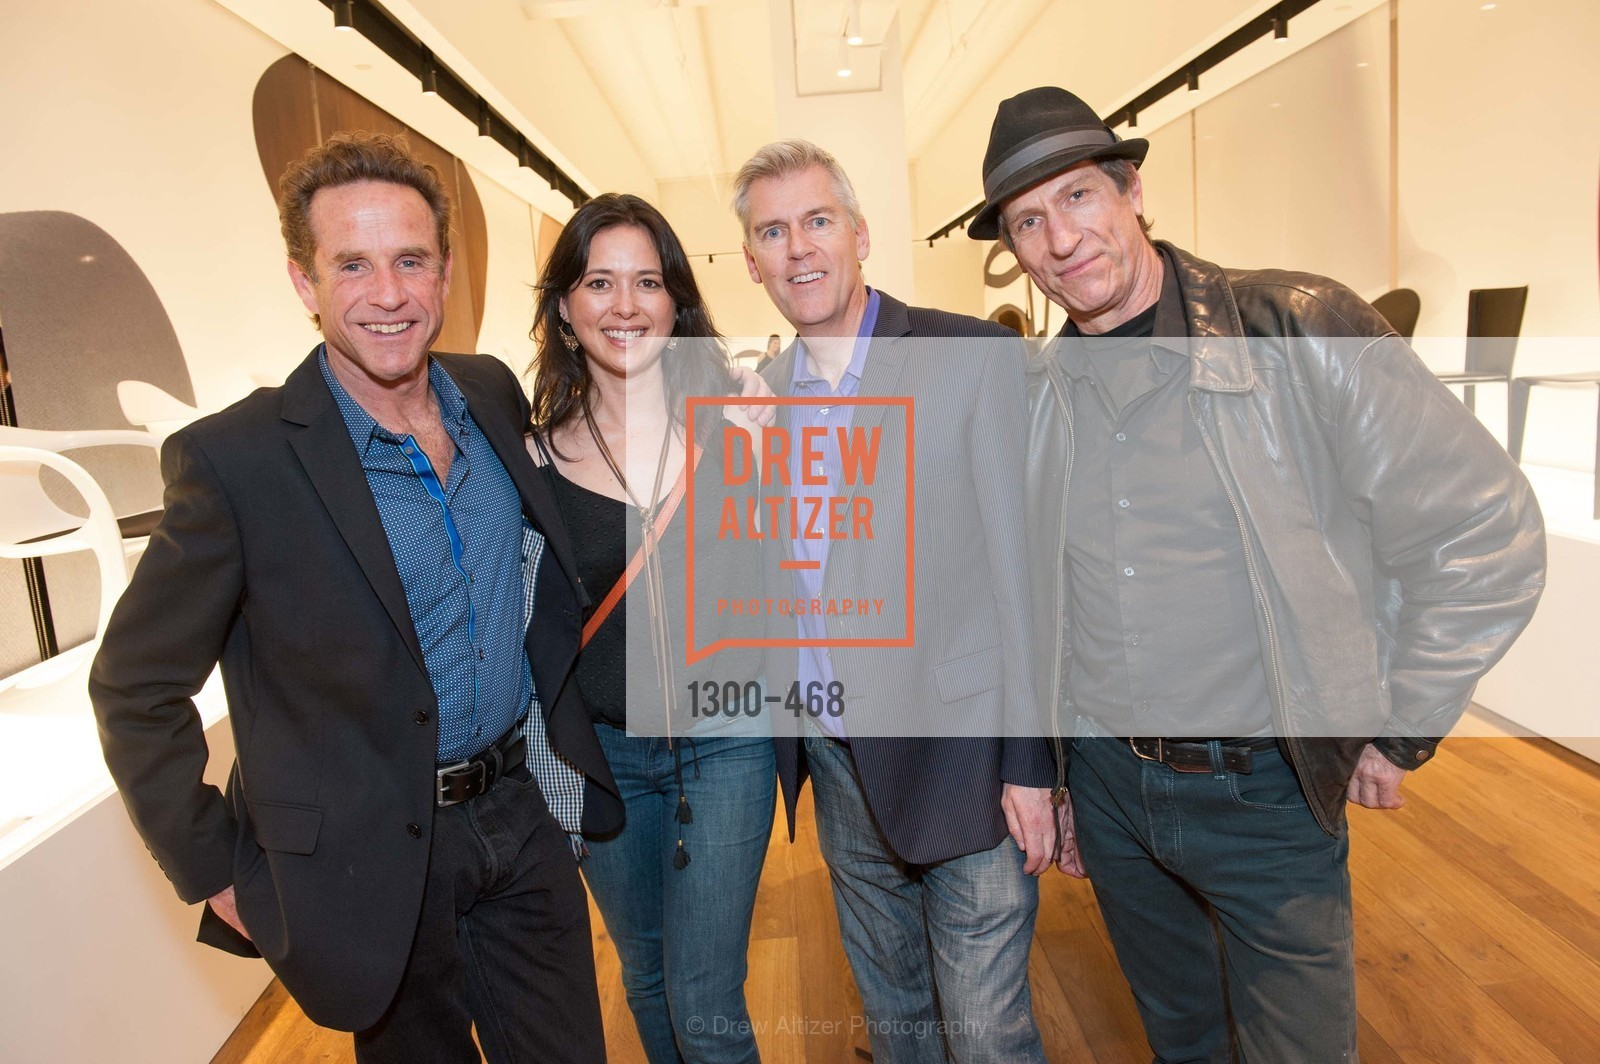 Mark Dupaix, Liz Young, Michael Penn, Clyde Miles, DESIGN WITHIN REACH Studio Opening, US. US, January 21st, 2014,Drew Altizer, Drew Altizer Photography, full-service agency, private events, San Francisco photographer, photographer california